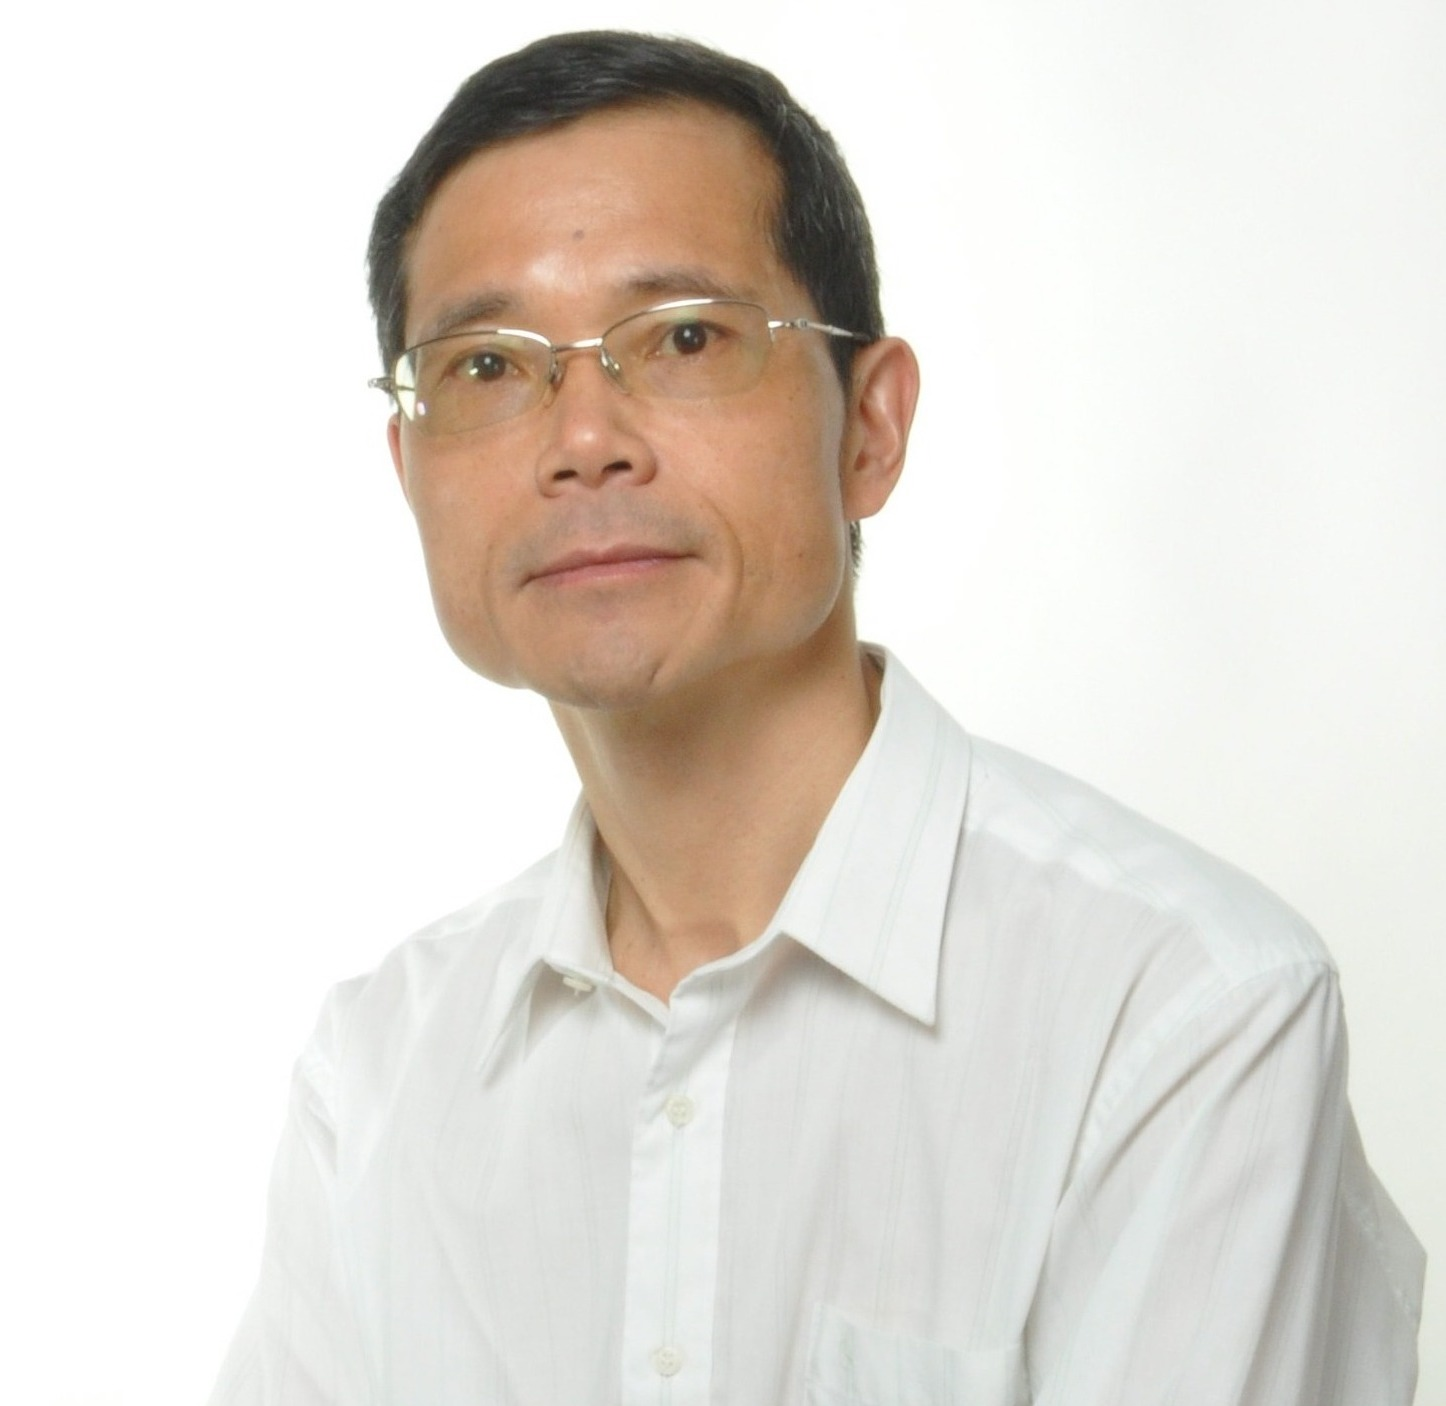 Visiting Professor, University of Fudan